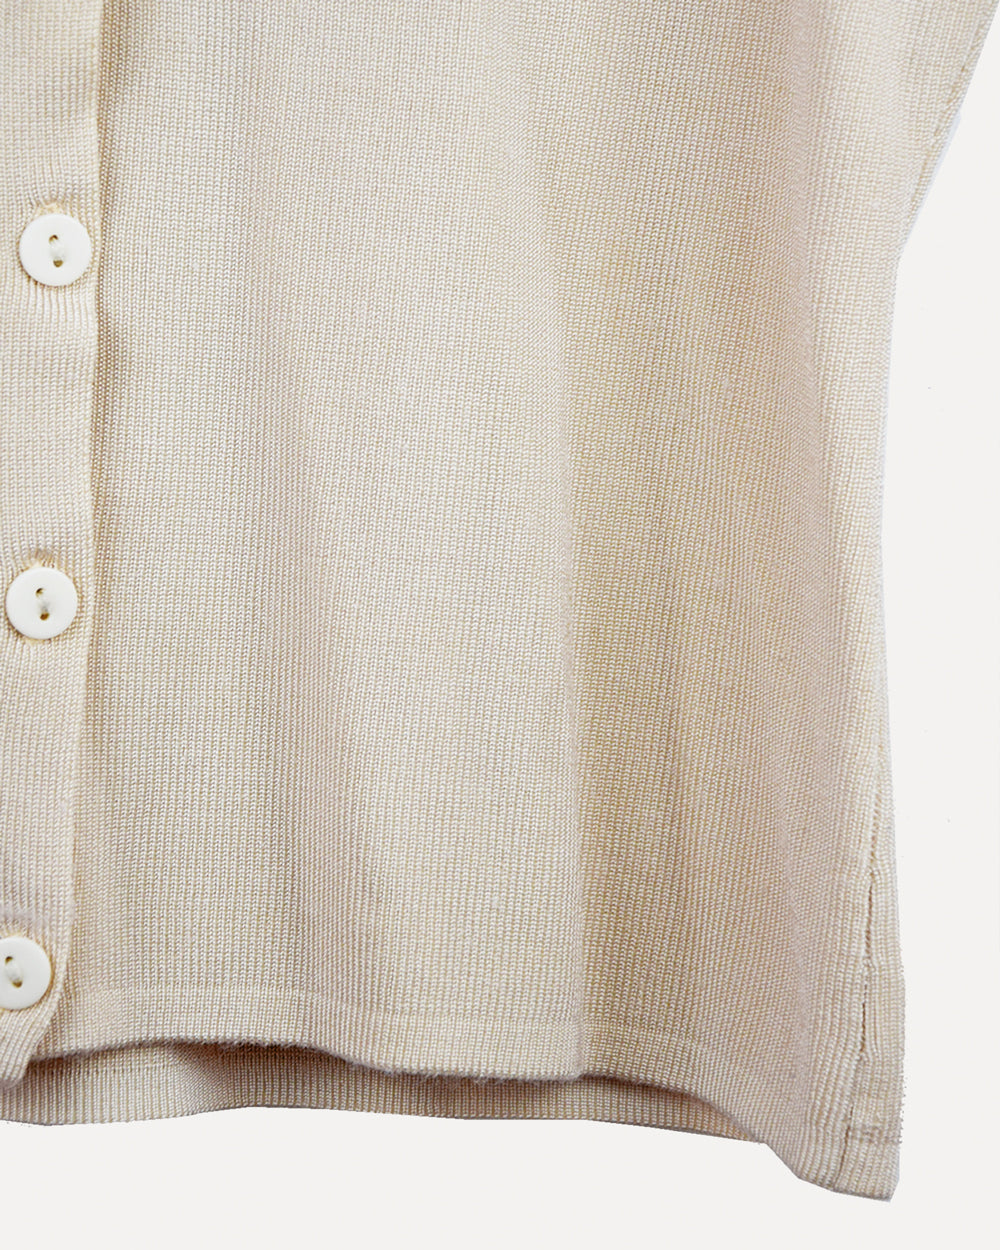 Vintage Button up Knit Top | 10